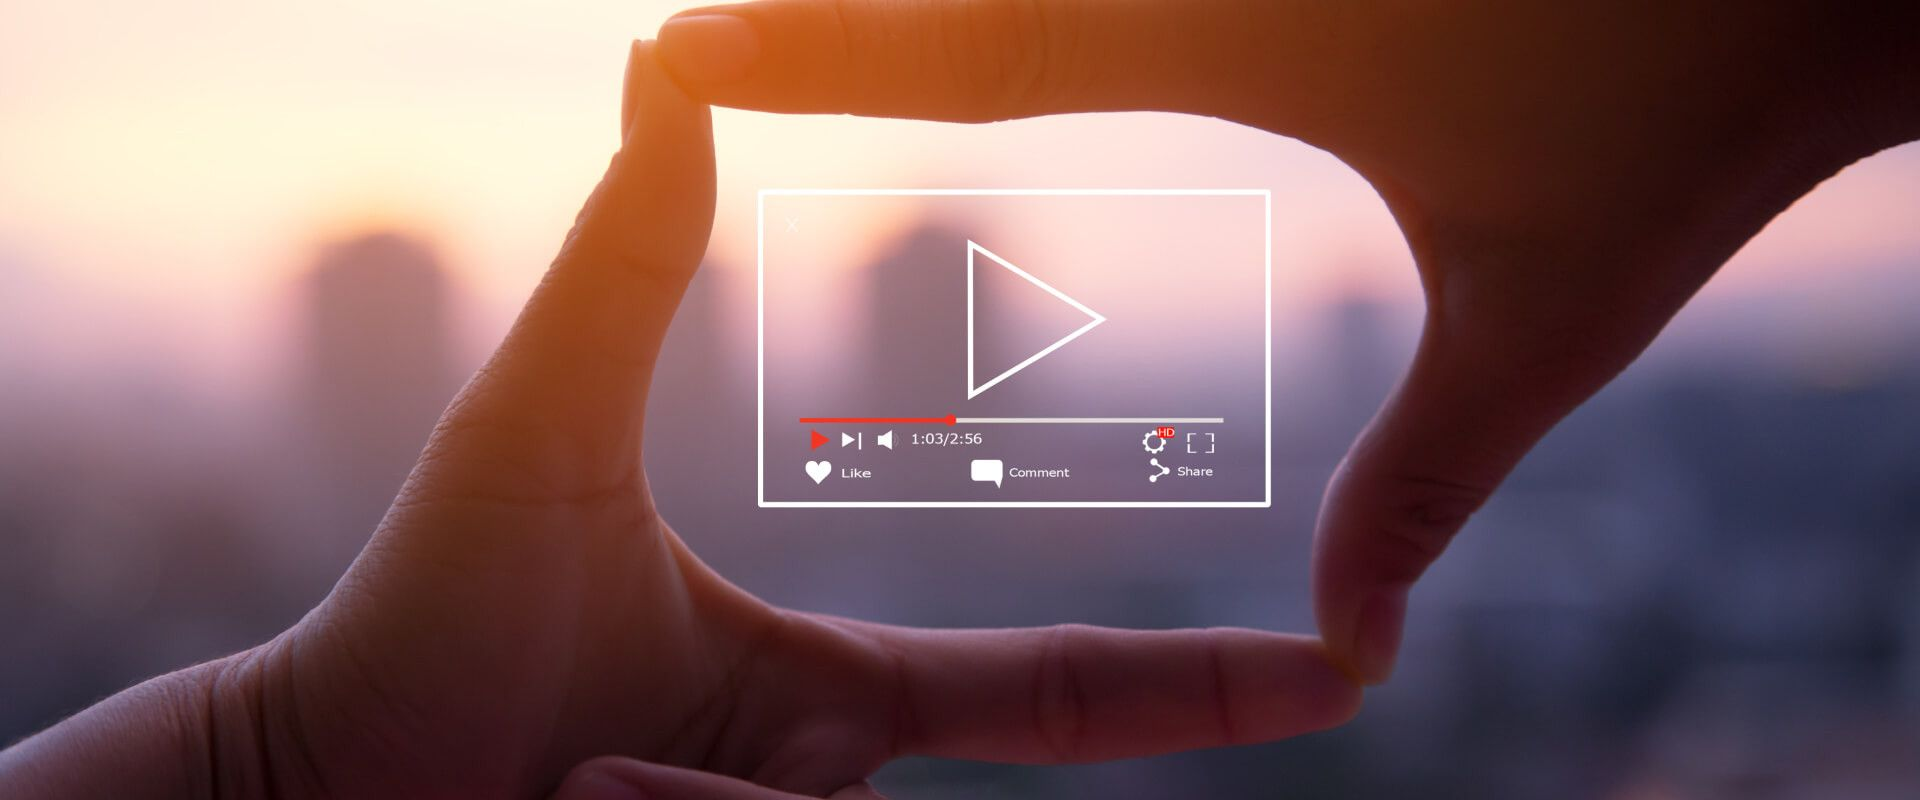 Estrategia de vídeo marketing para 2021